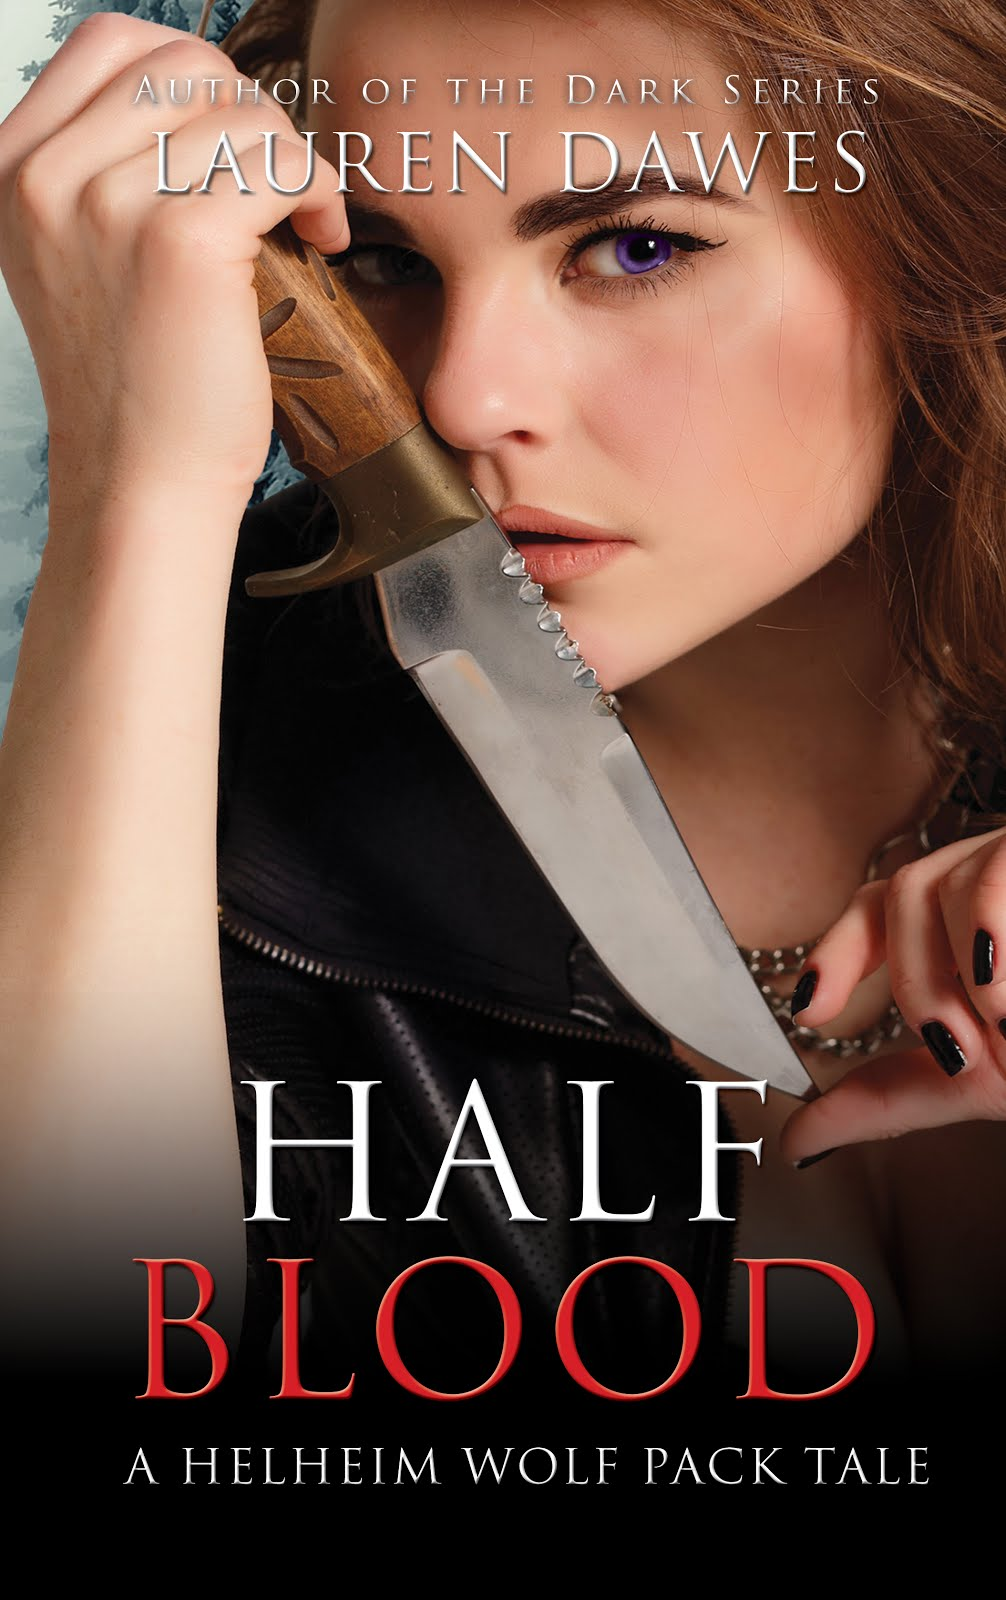 Half Blood (A Helheim Wolf Pack Tale #1)